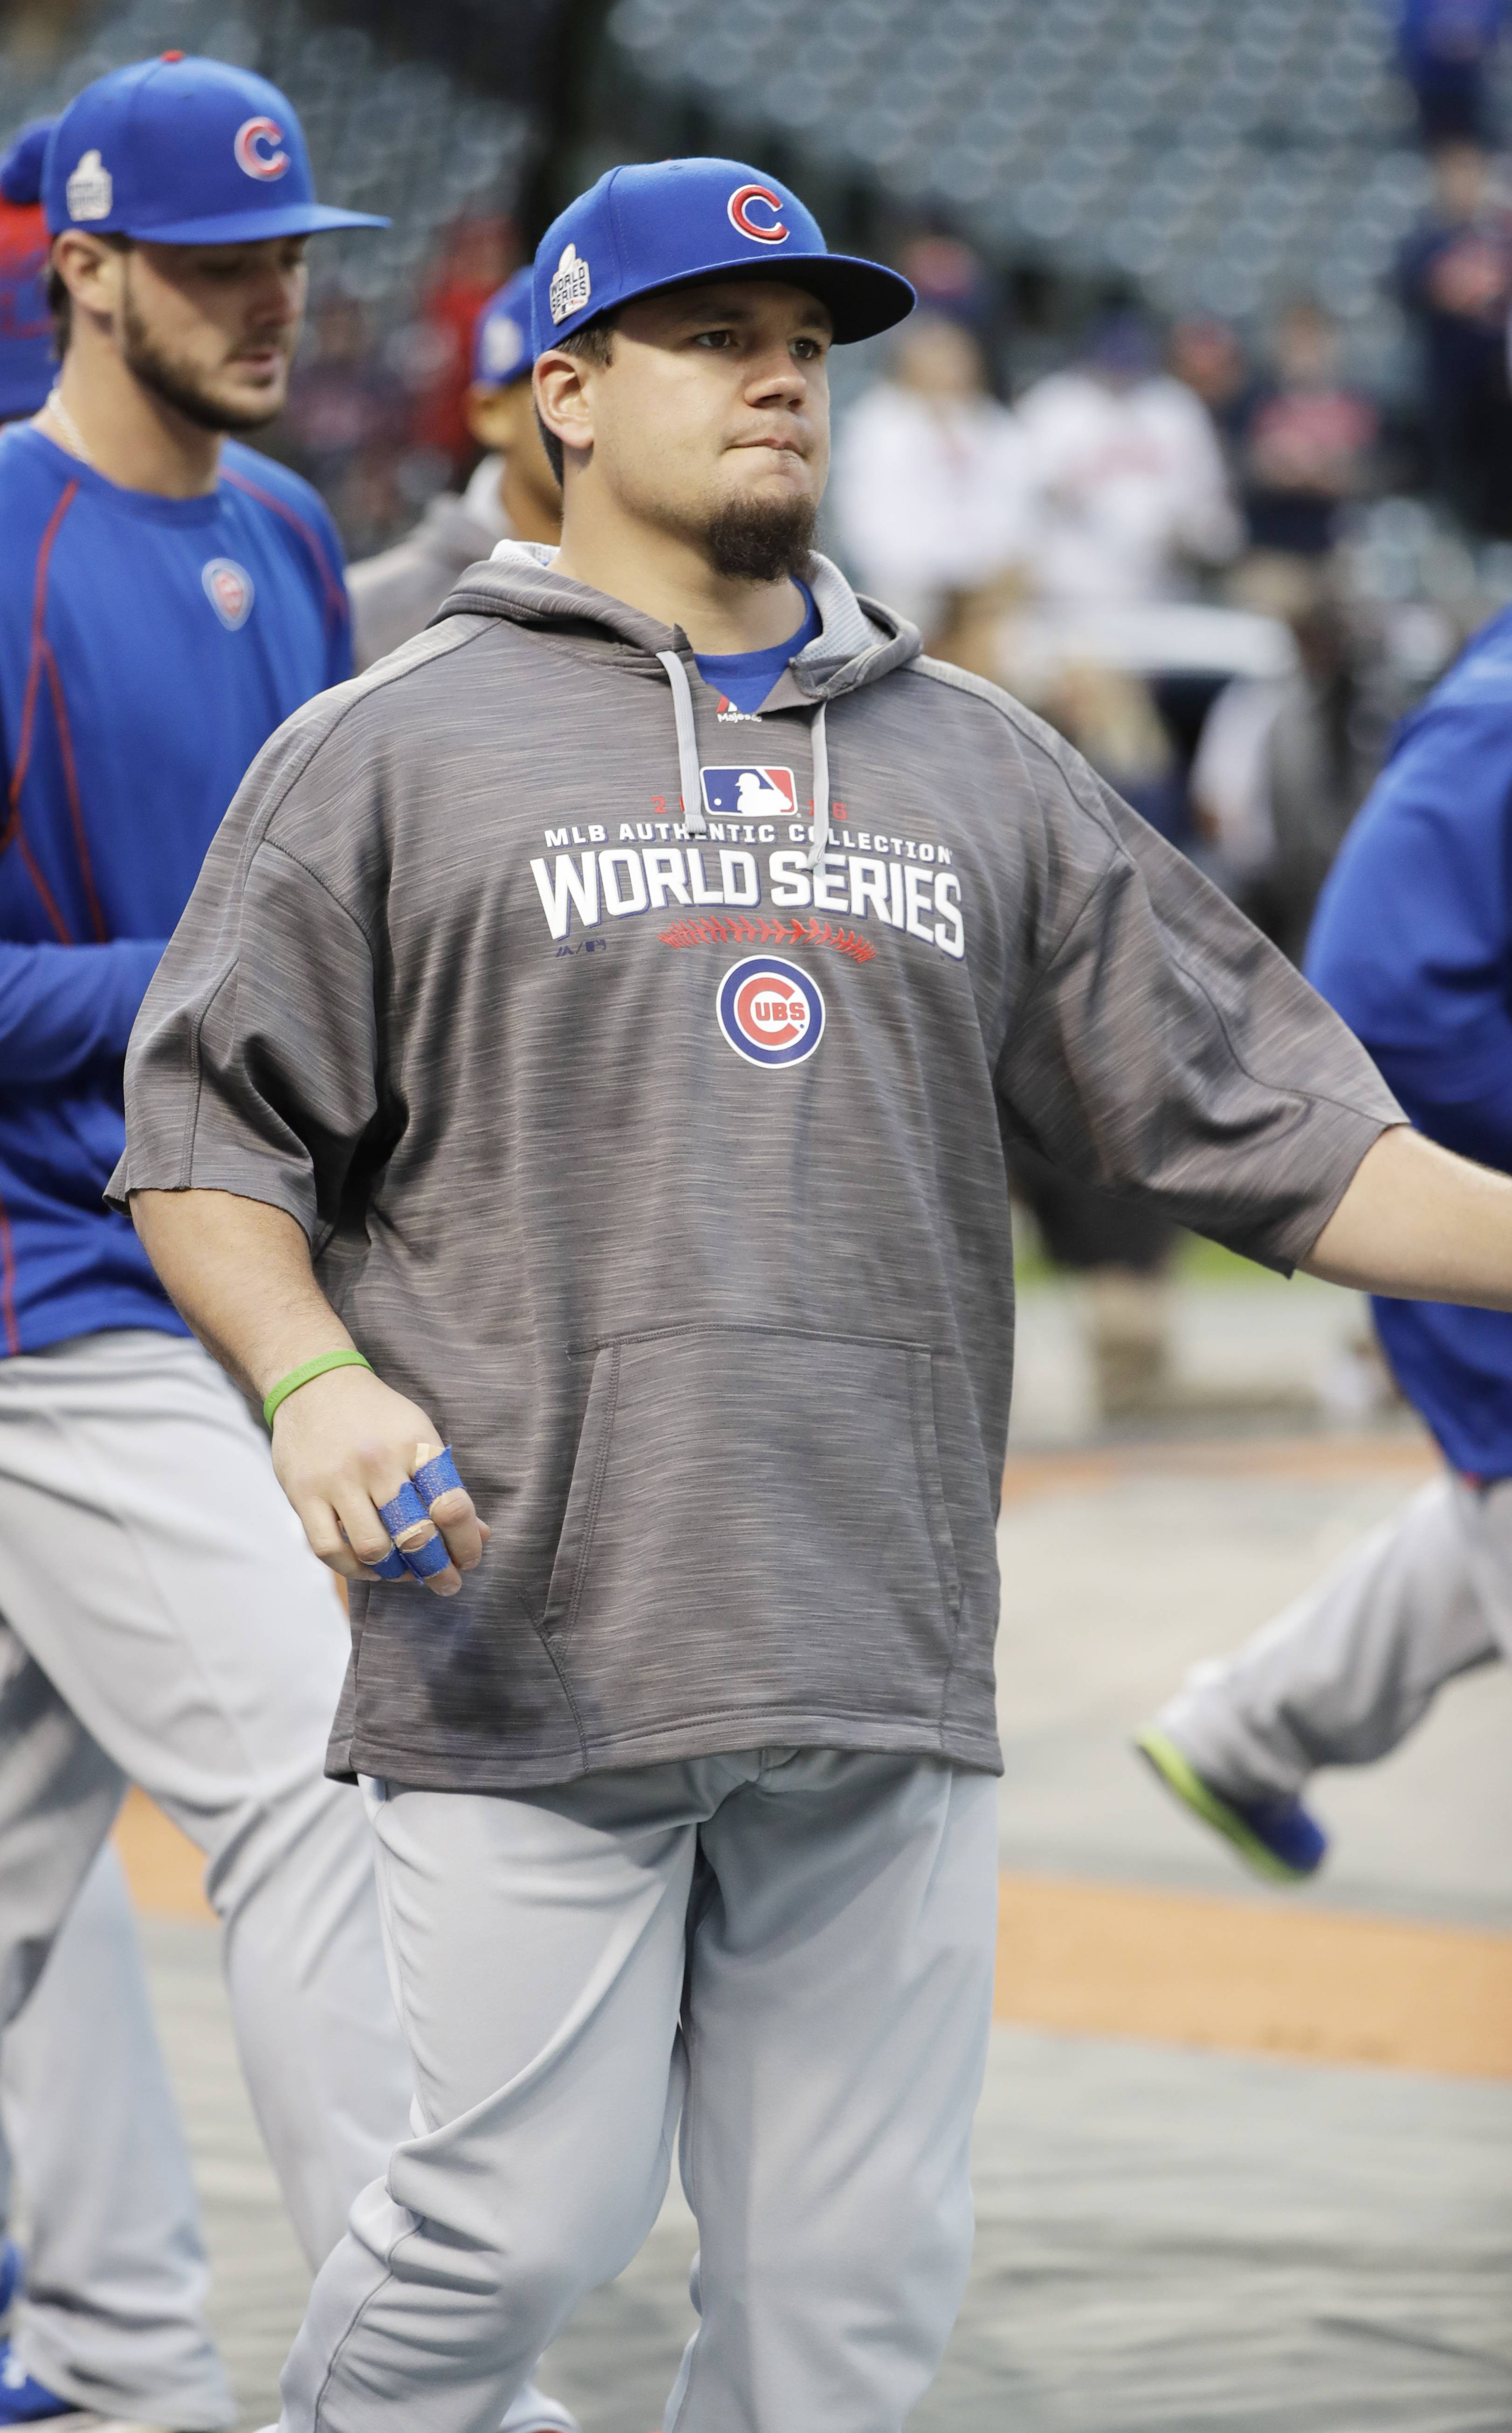 Chicago Cubs' Kyle Schwarber watches batting practice before Game 1 of the Major League Baseball World Series against the Cleveland Indians Tuesday, Oct. 25, 2016, in Cleveland. (AP Photo/David J. Phillip)